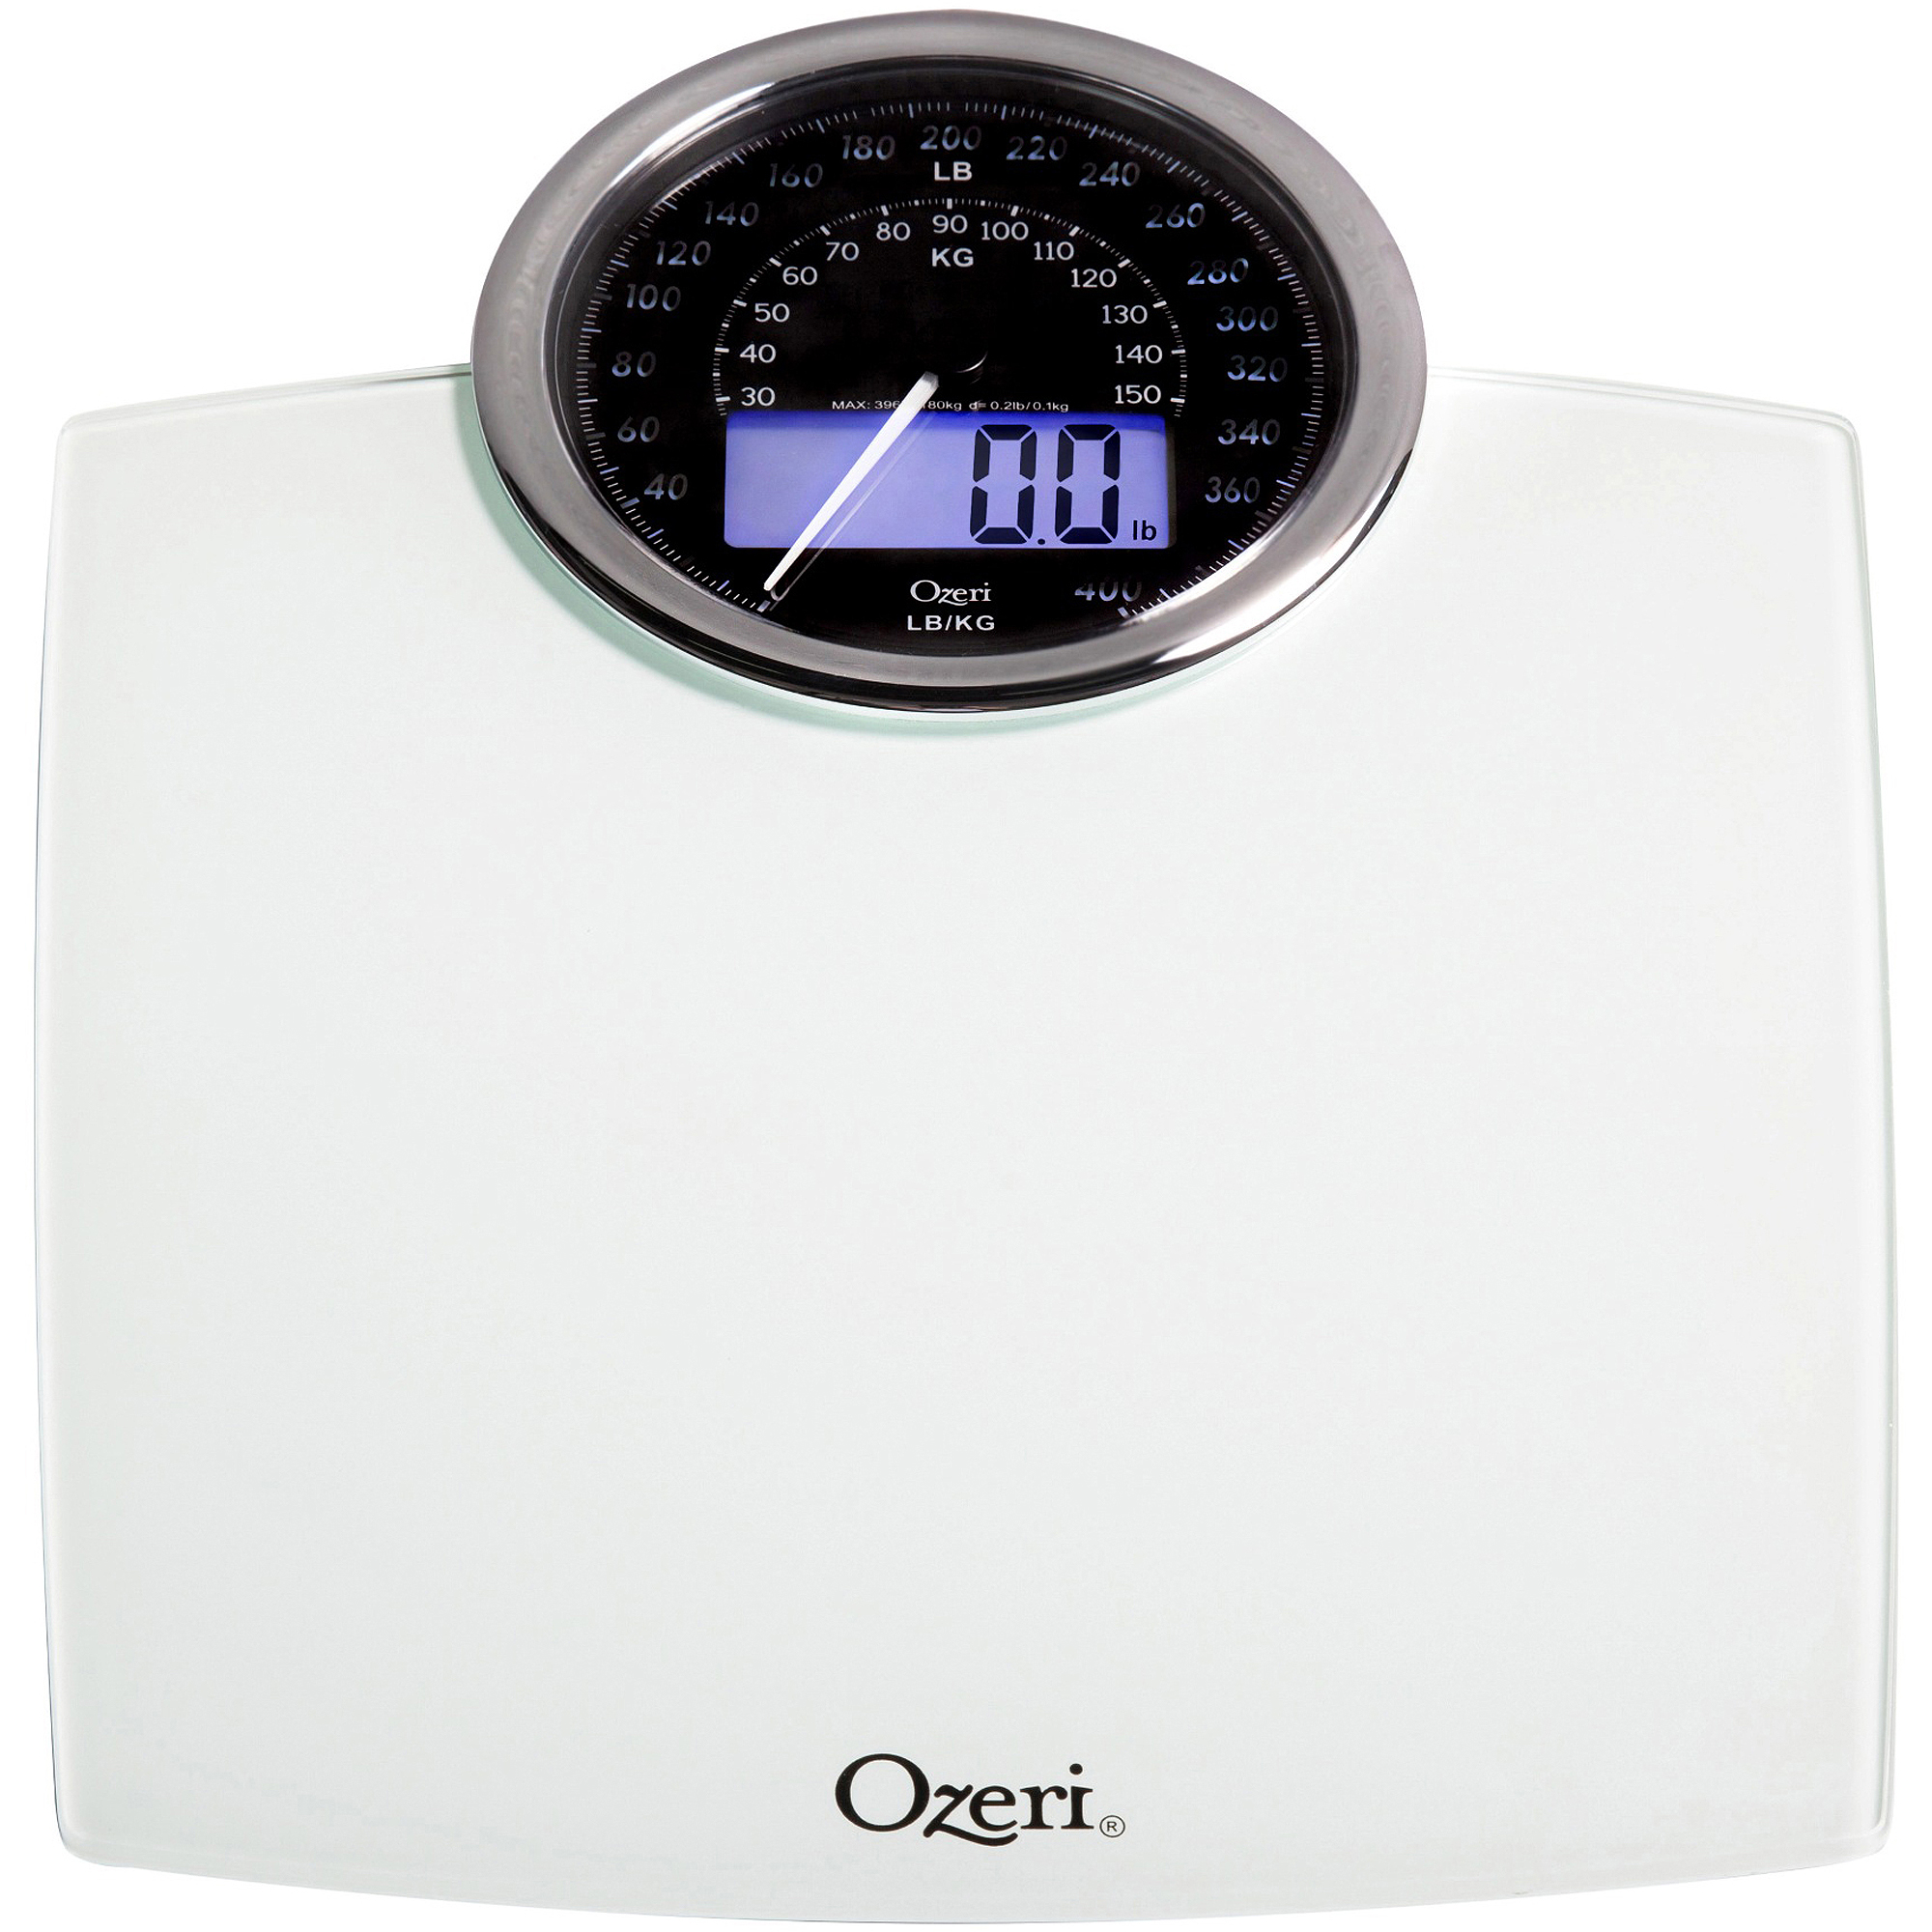 NEW Rev Digital Bathroom Scale With Electro Mechanical Weight Dial Black Colour